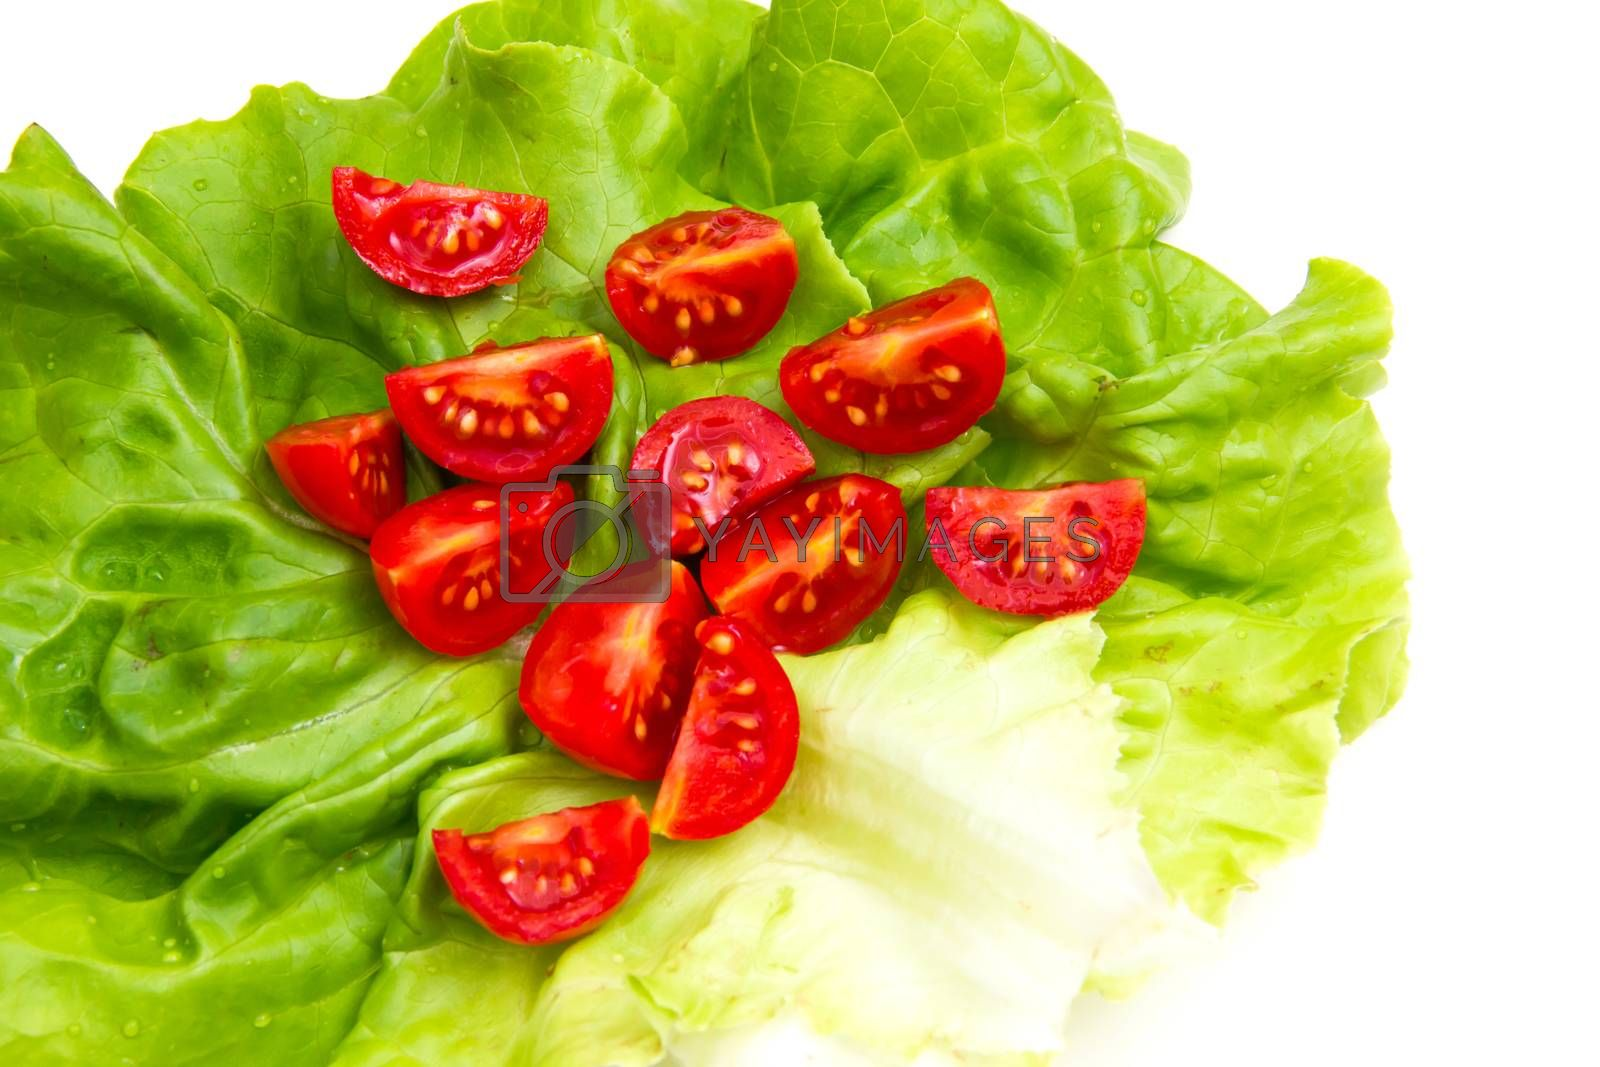 Cherry tomatoes on lettuce on white background close up